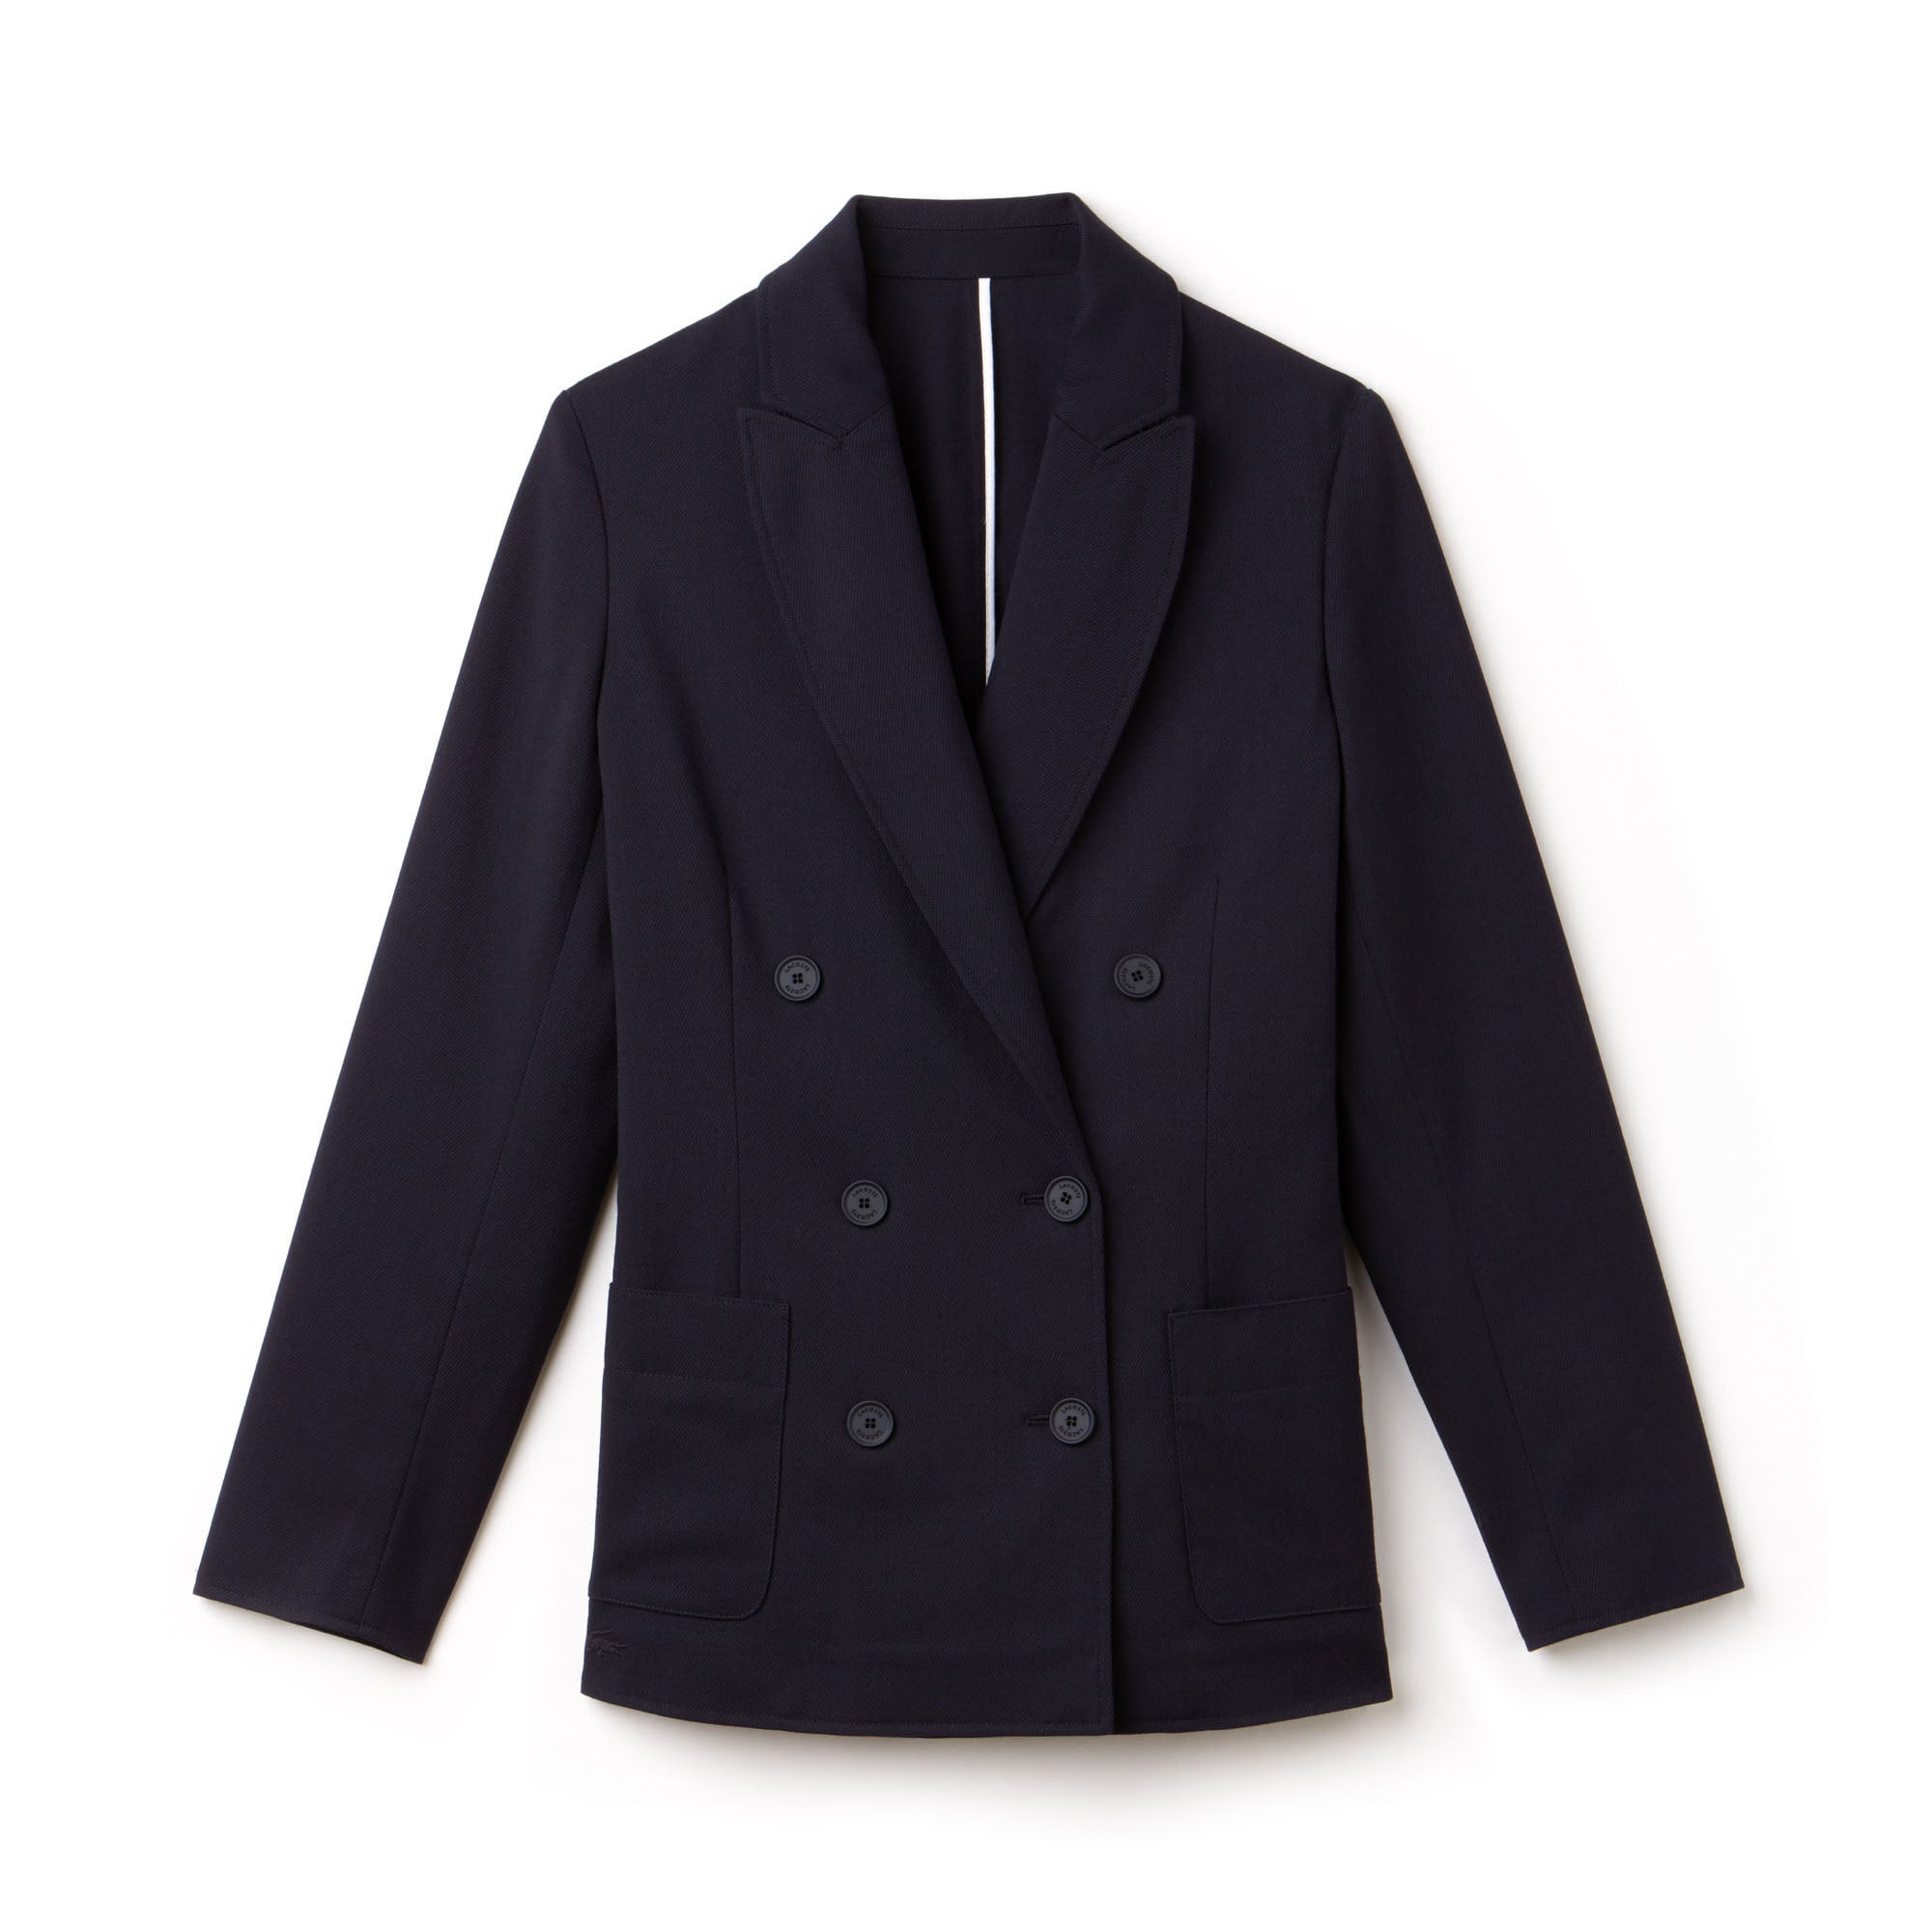 Women's Contrast Accents Stretch Wool Piqué Blazer